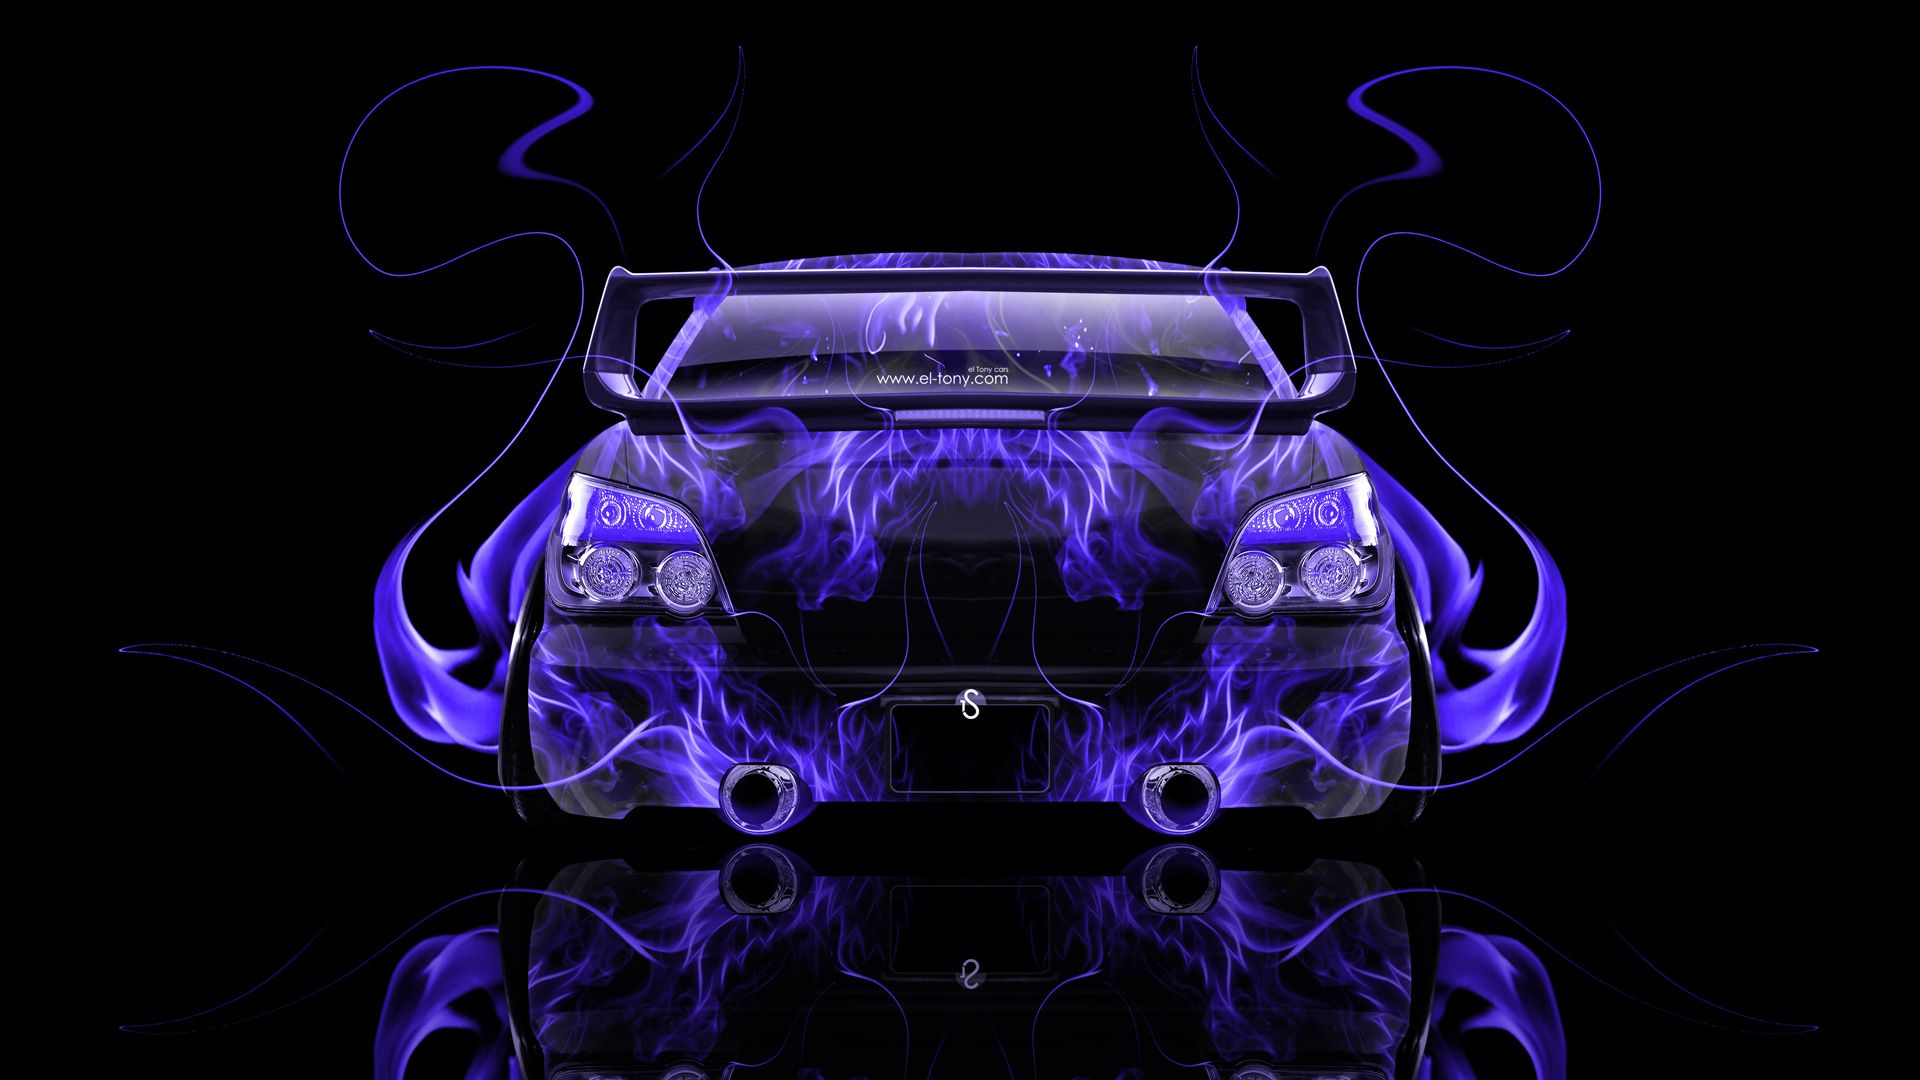 14 Best Abstract Cars Images On Pinterest | Cars, Hd Wallpaper And  Wallpaper Images Hd